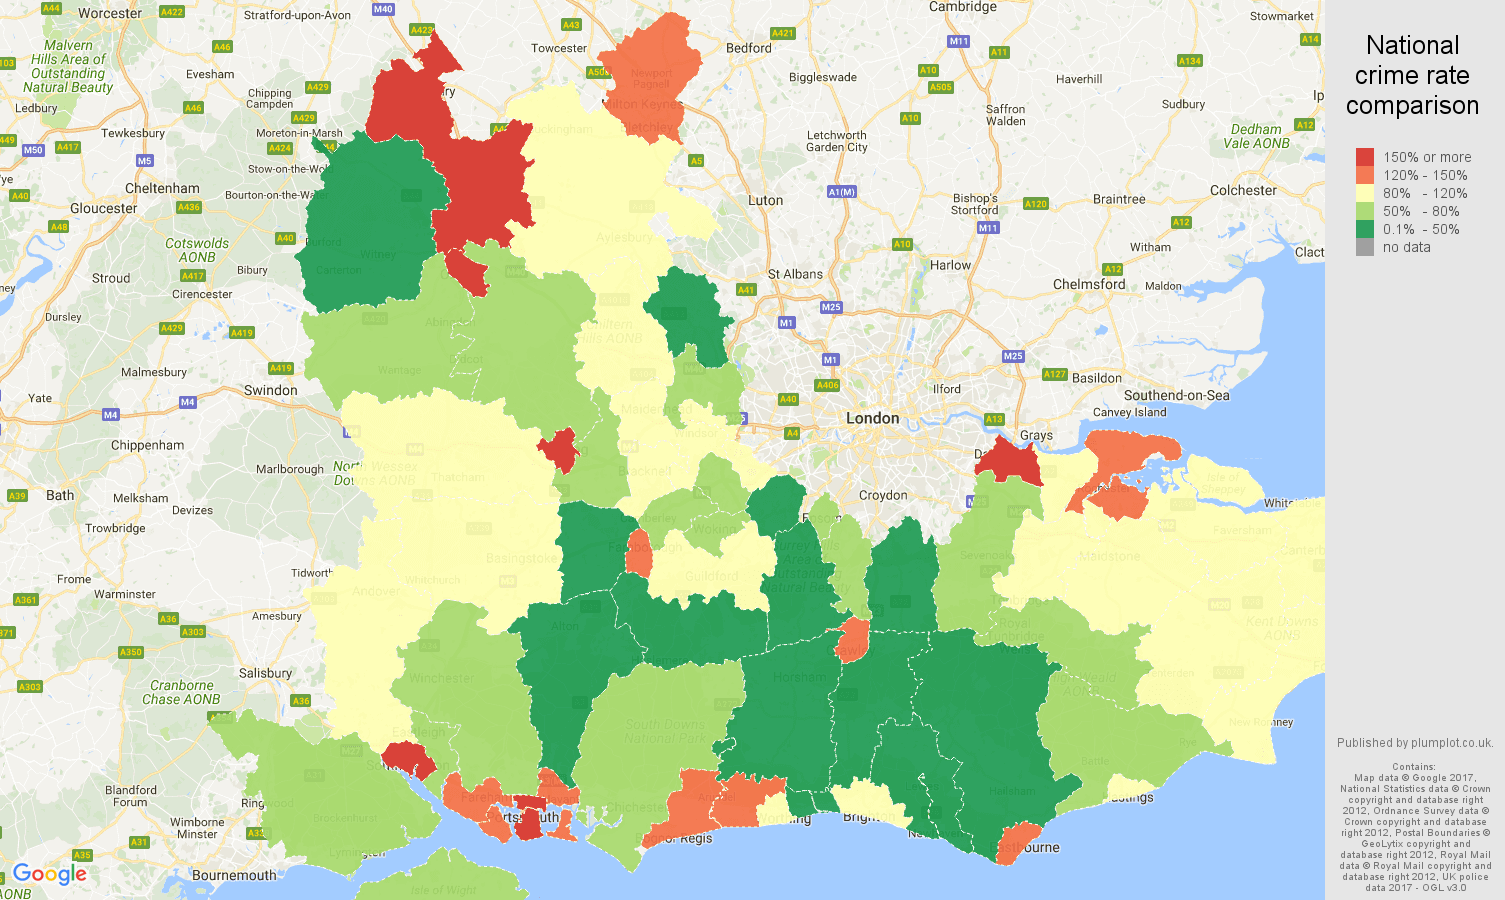 Map Of The South England.South East England Shoplifting Crime Statistics In Maps And Graphs